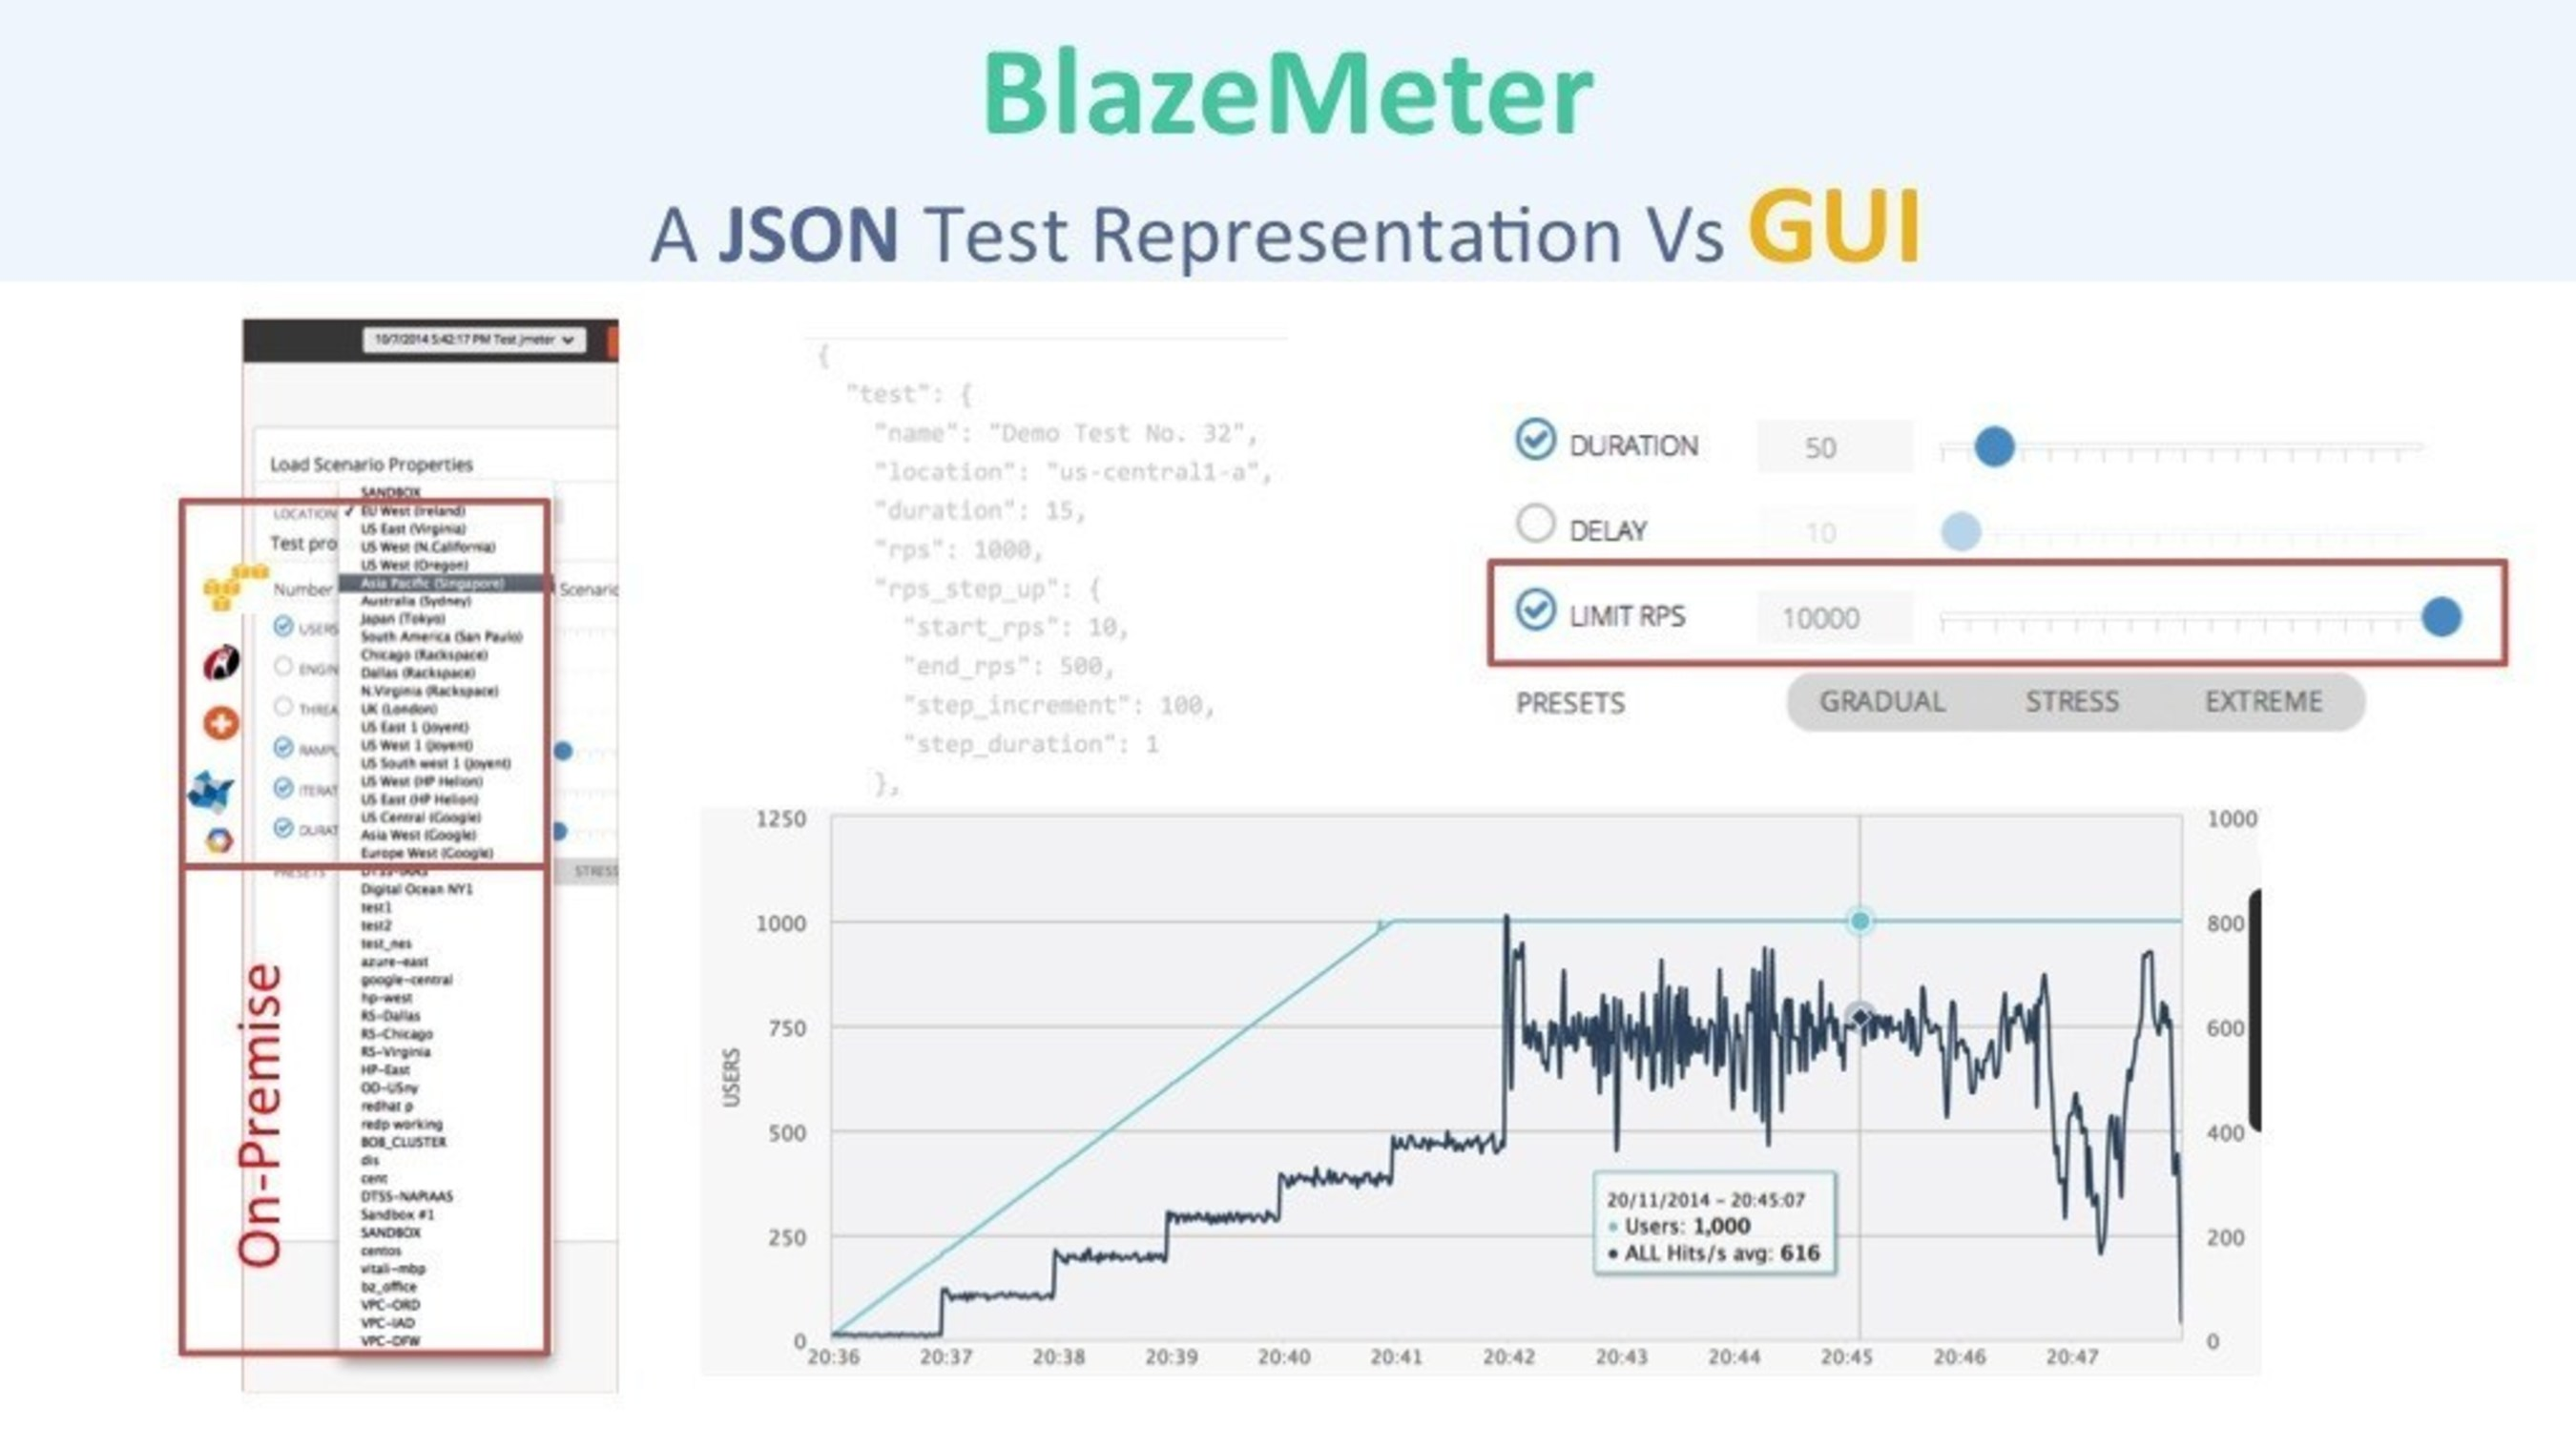 BlazeMeter's Continuous Testing as a Services allows developers to replace scripts and use industry ...